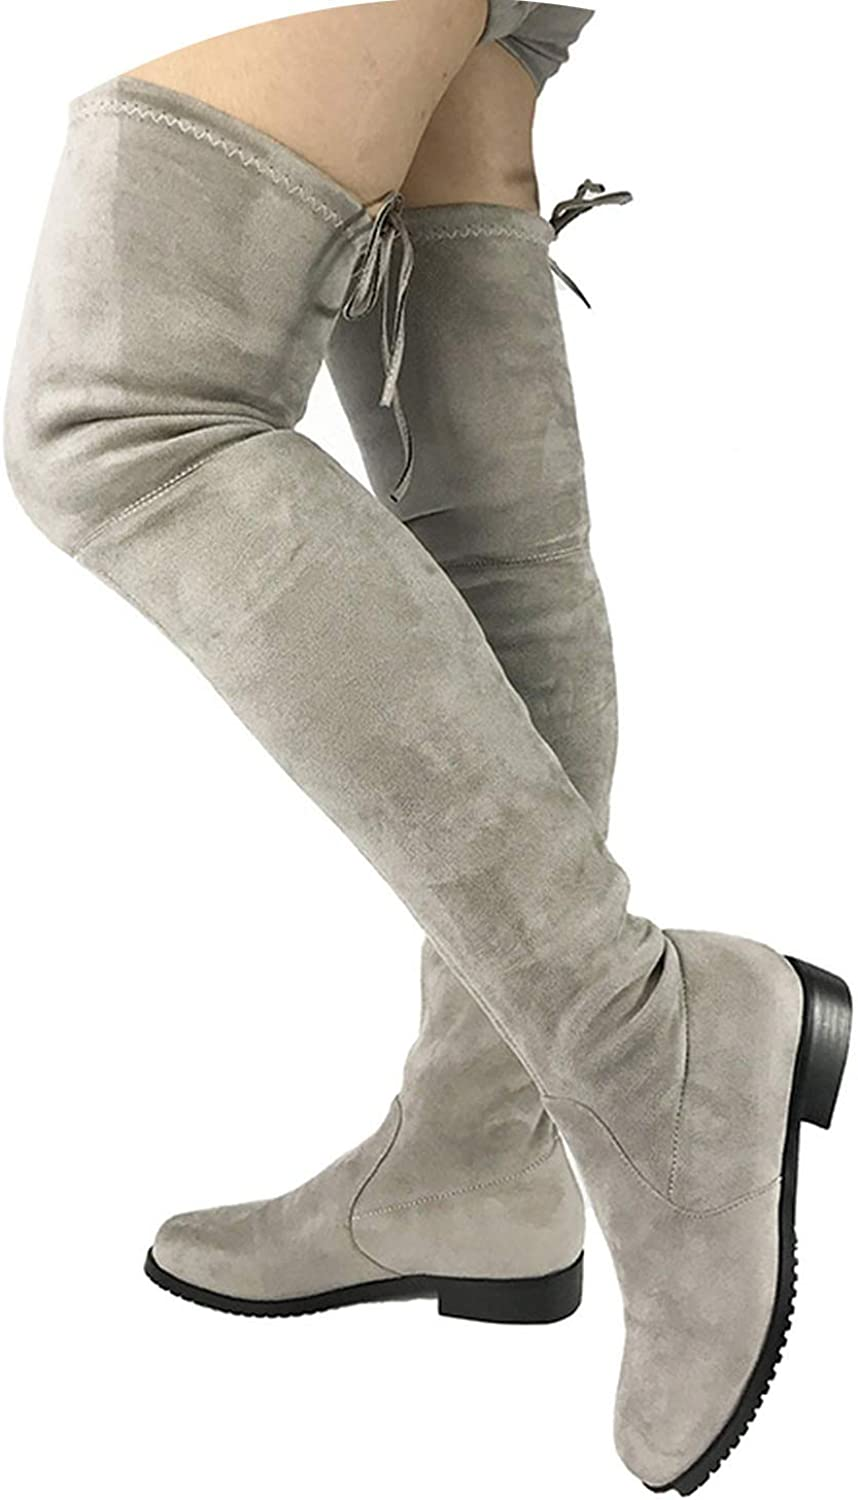 Crazy-Shop Thigh High Flat Boots Women Over The Knee Boots Fall Winter Faux Suede Boots shoes Woman